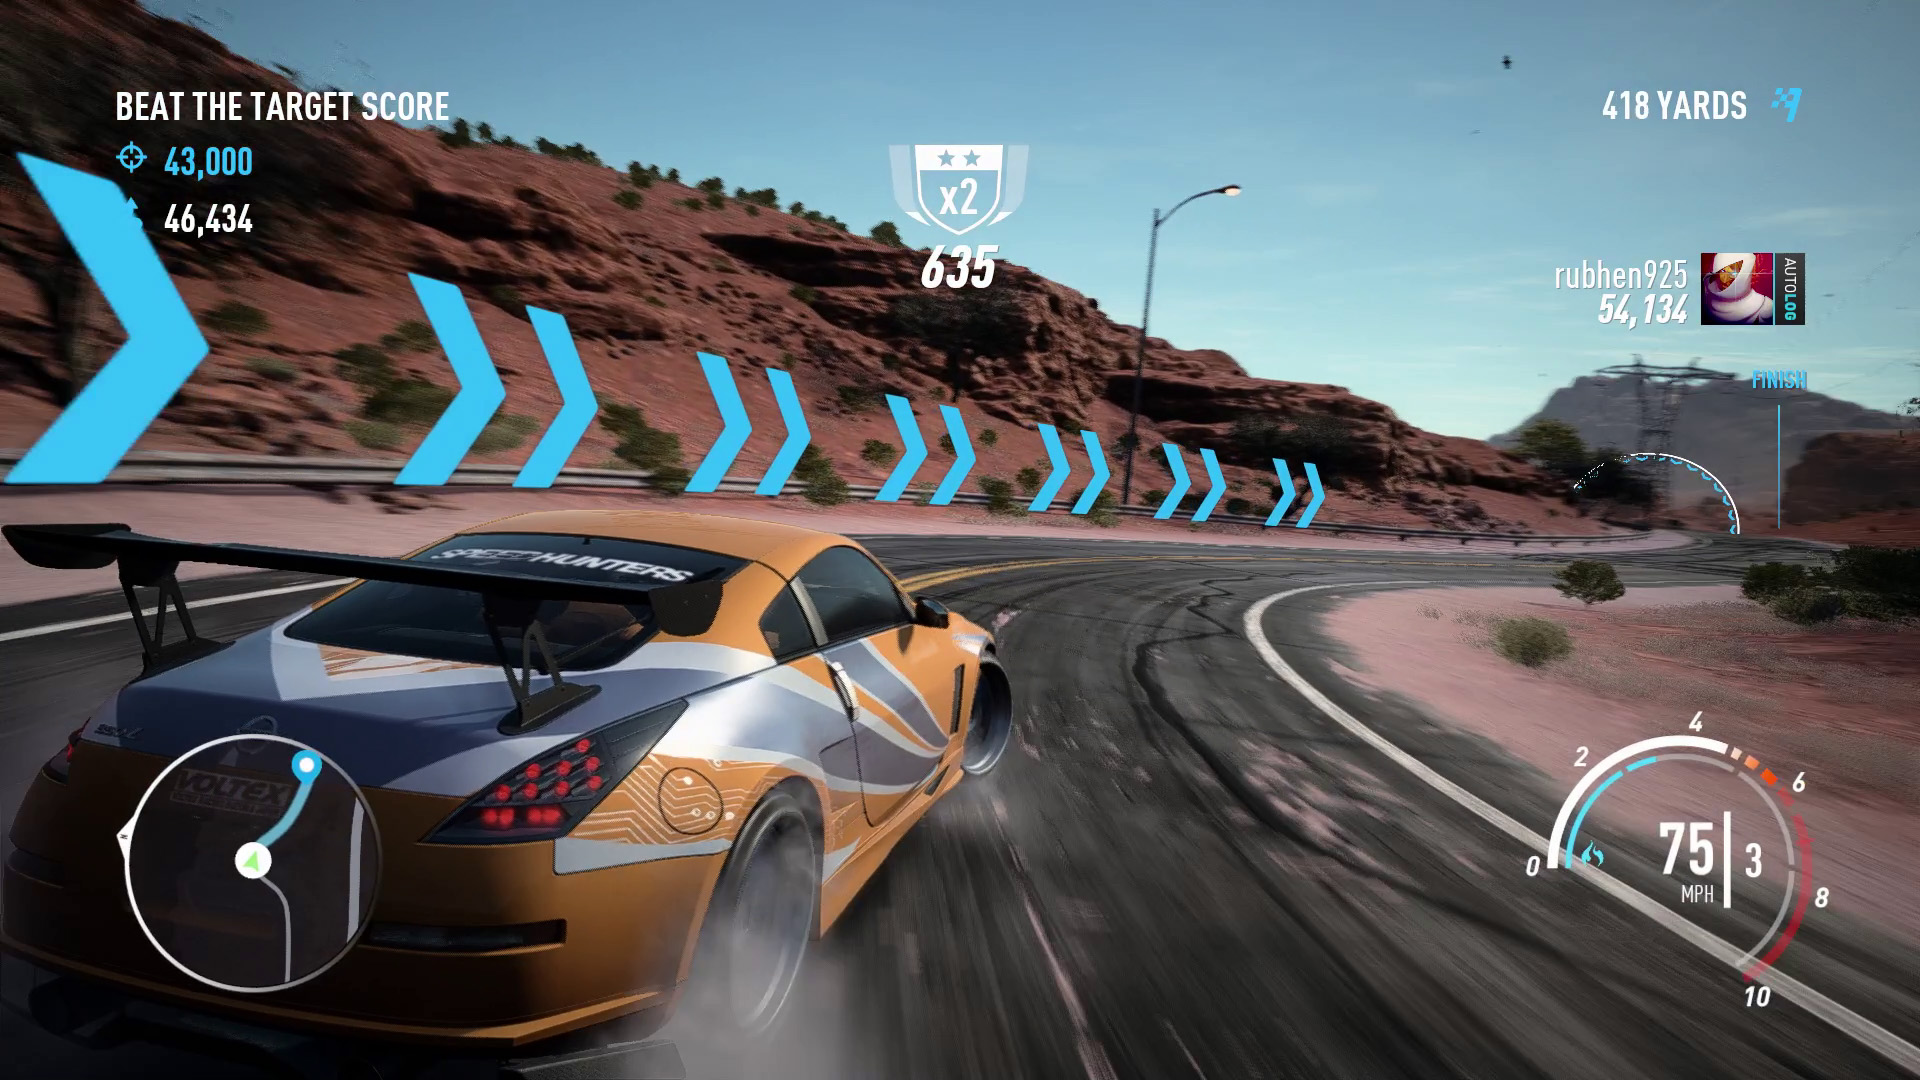 Need for Speed Payback Review: Needs More Tuning | USgamer